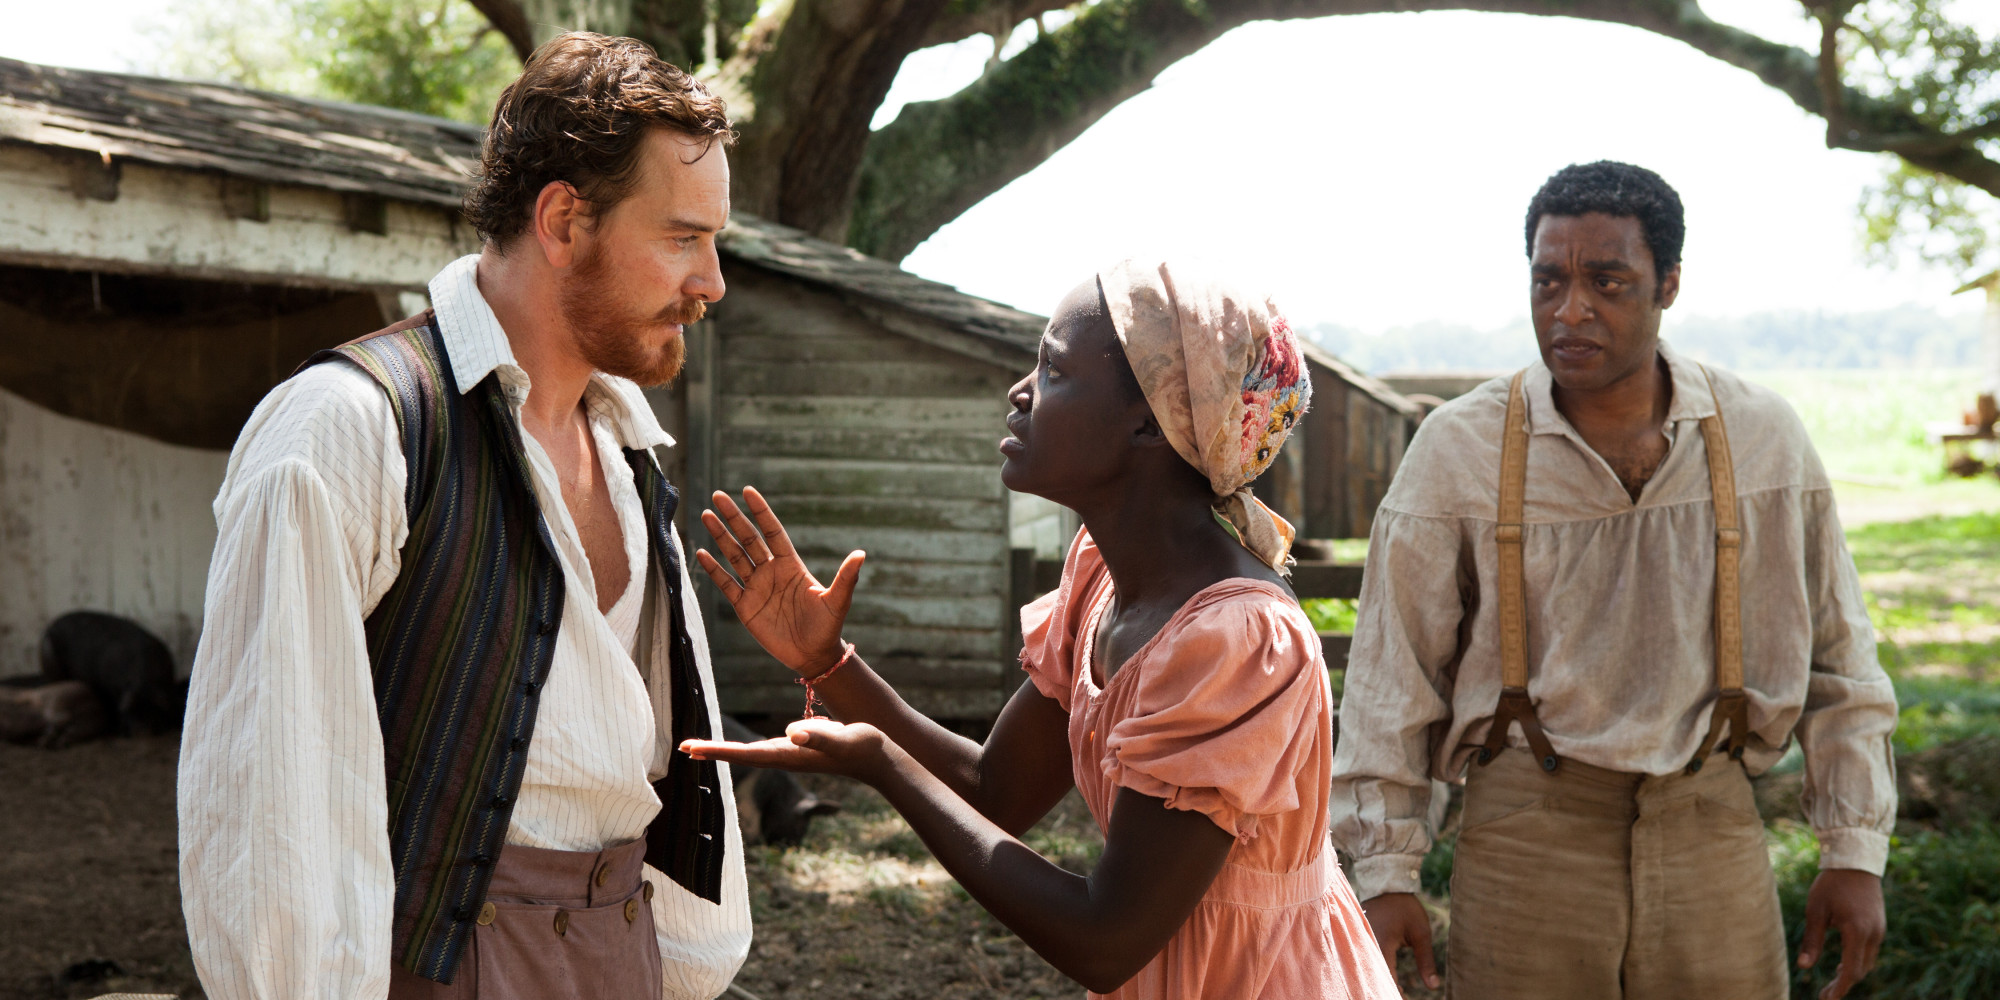 12 Years a Slave Reframed: A Narrative of White Racist Pathology